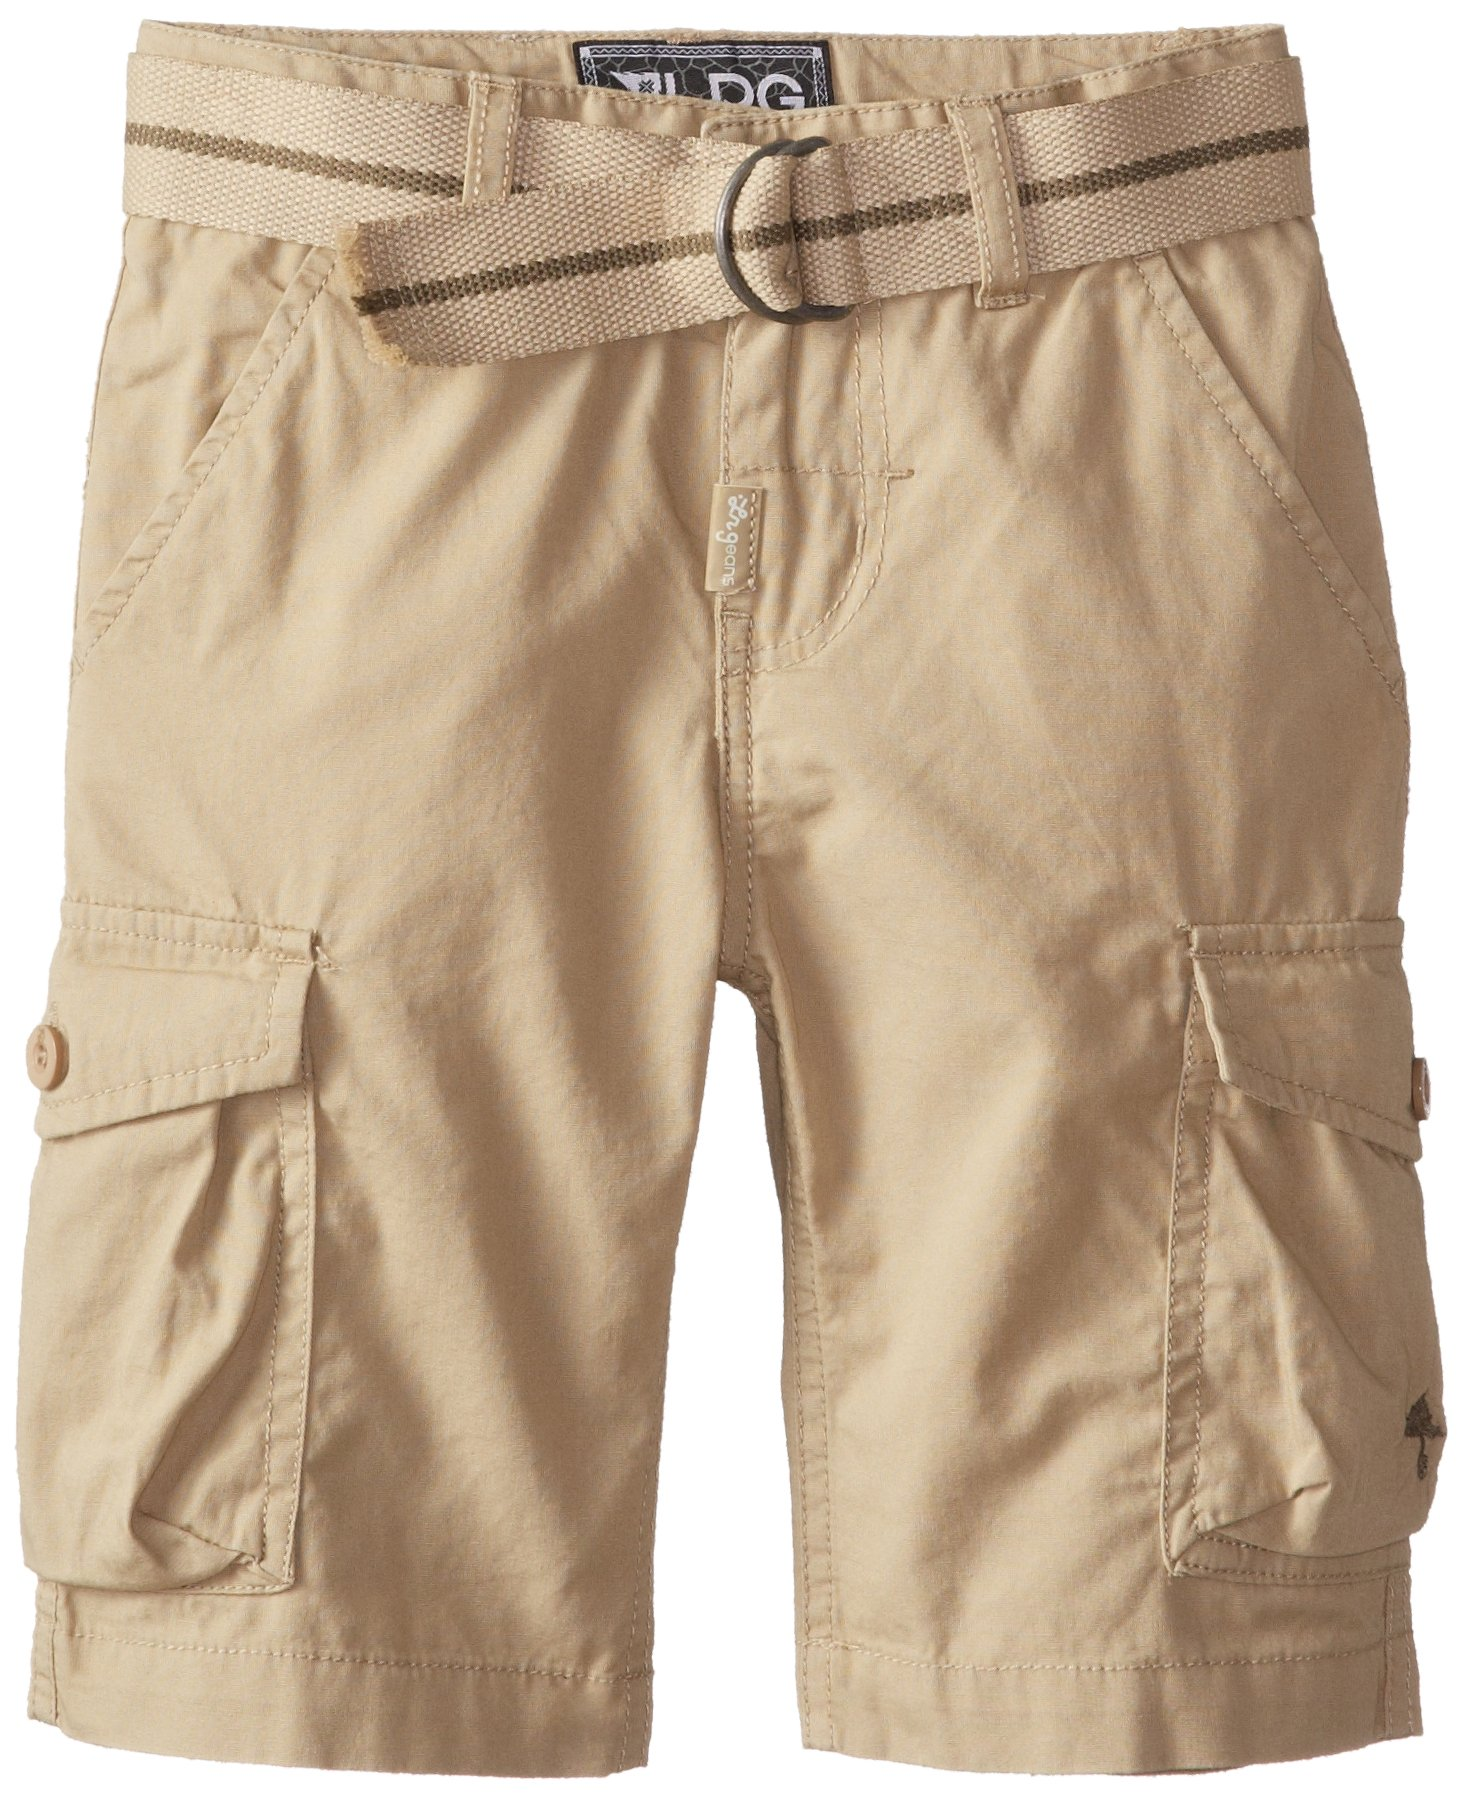 LRG Little Boys' Research Cargo, Khaki, 6